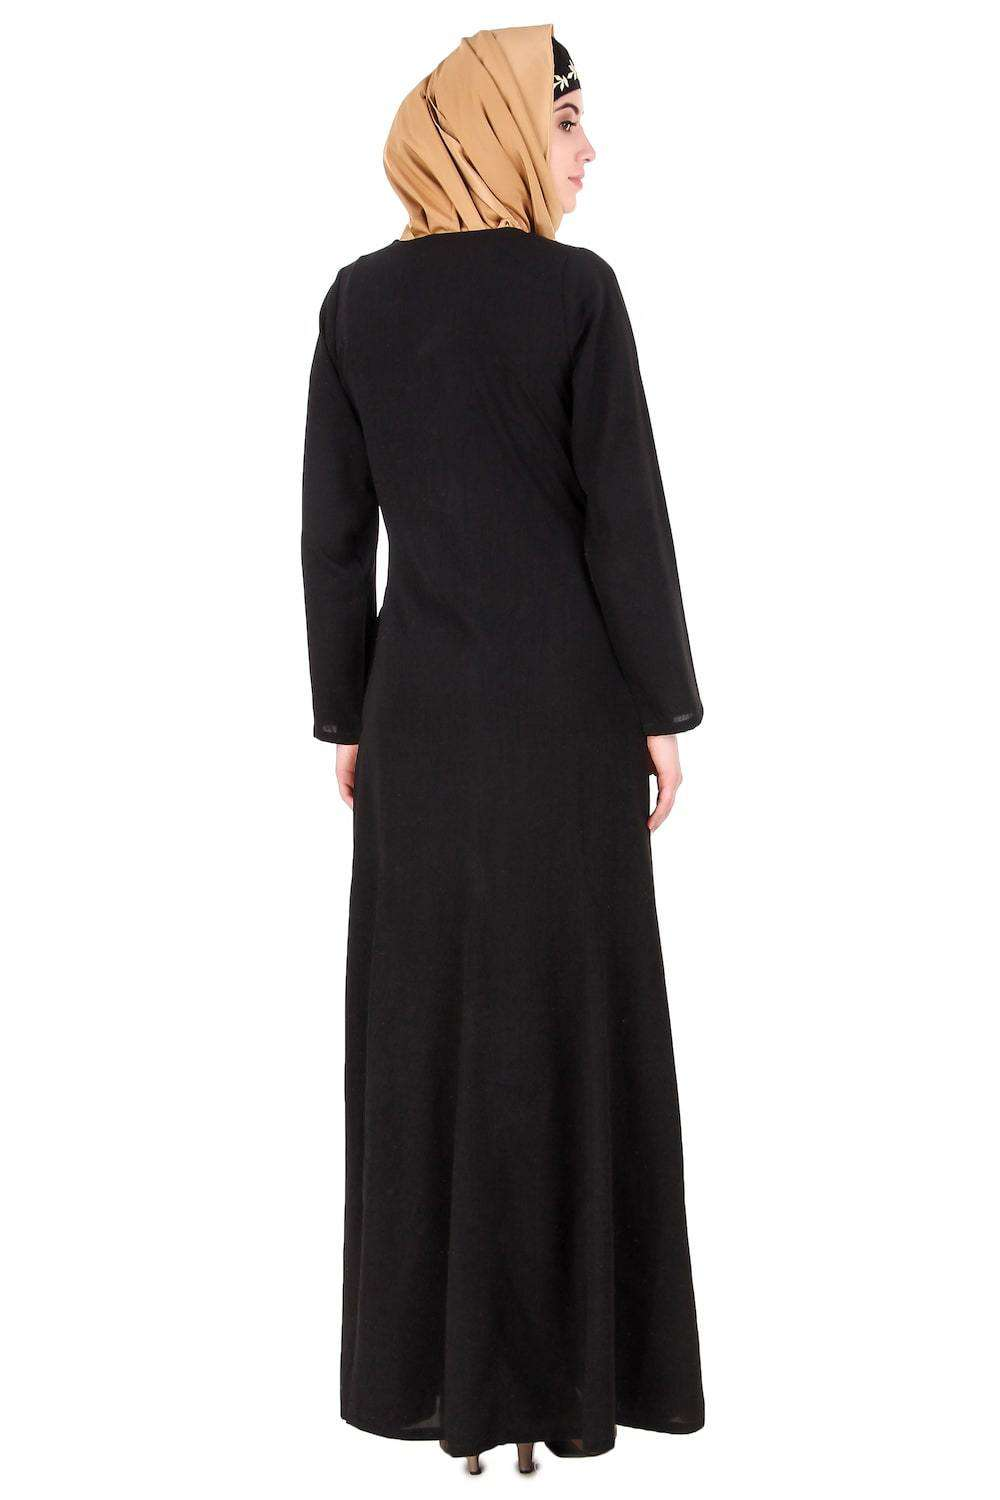 Black Nida Leaf Embroidered Abaya